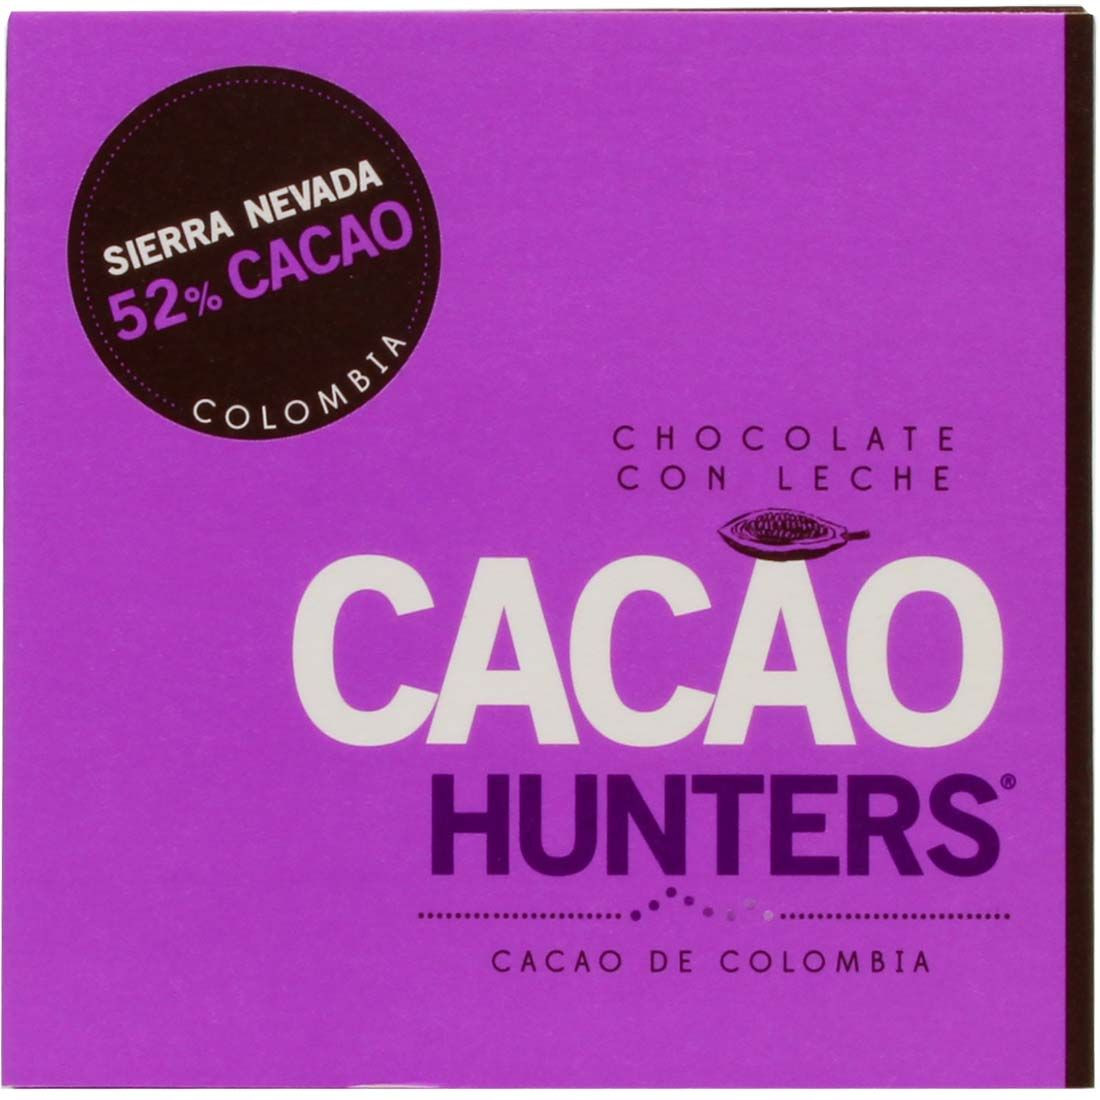 Cacao Hunters Sierra Nevada 52% Cacao Colombia - Bar of Chocolate, Columbia, Colombian chocolate, chocolate with milk, milk chocolate - Chocolats-De-Luxe